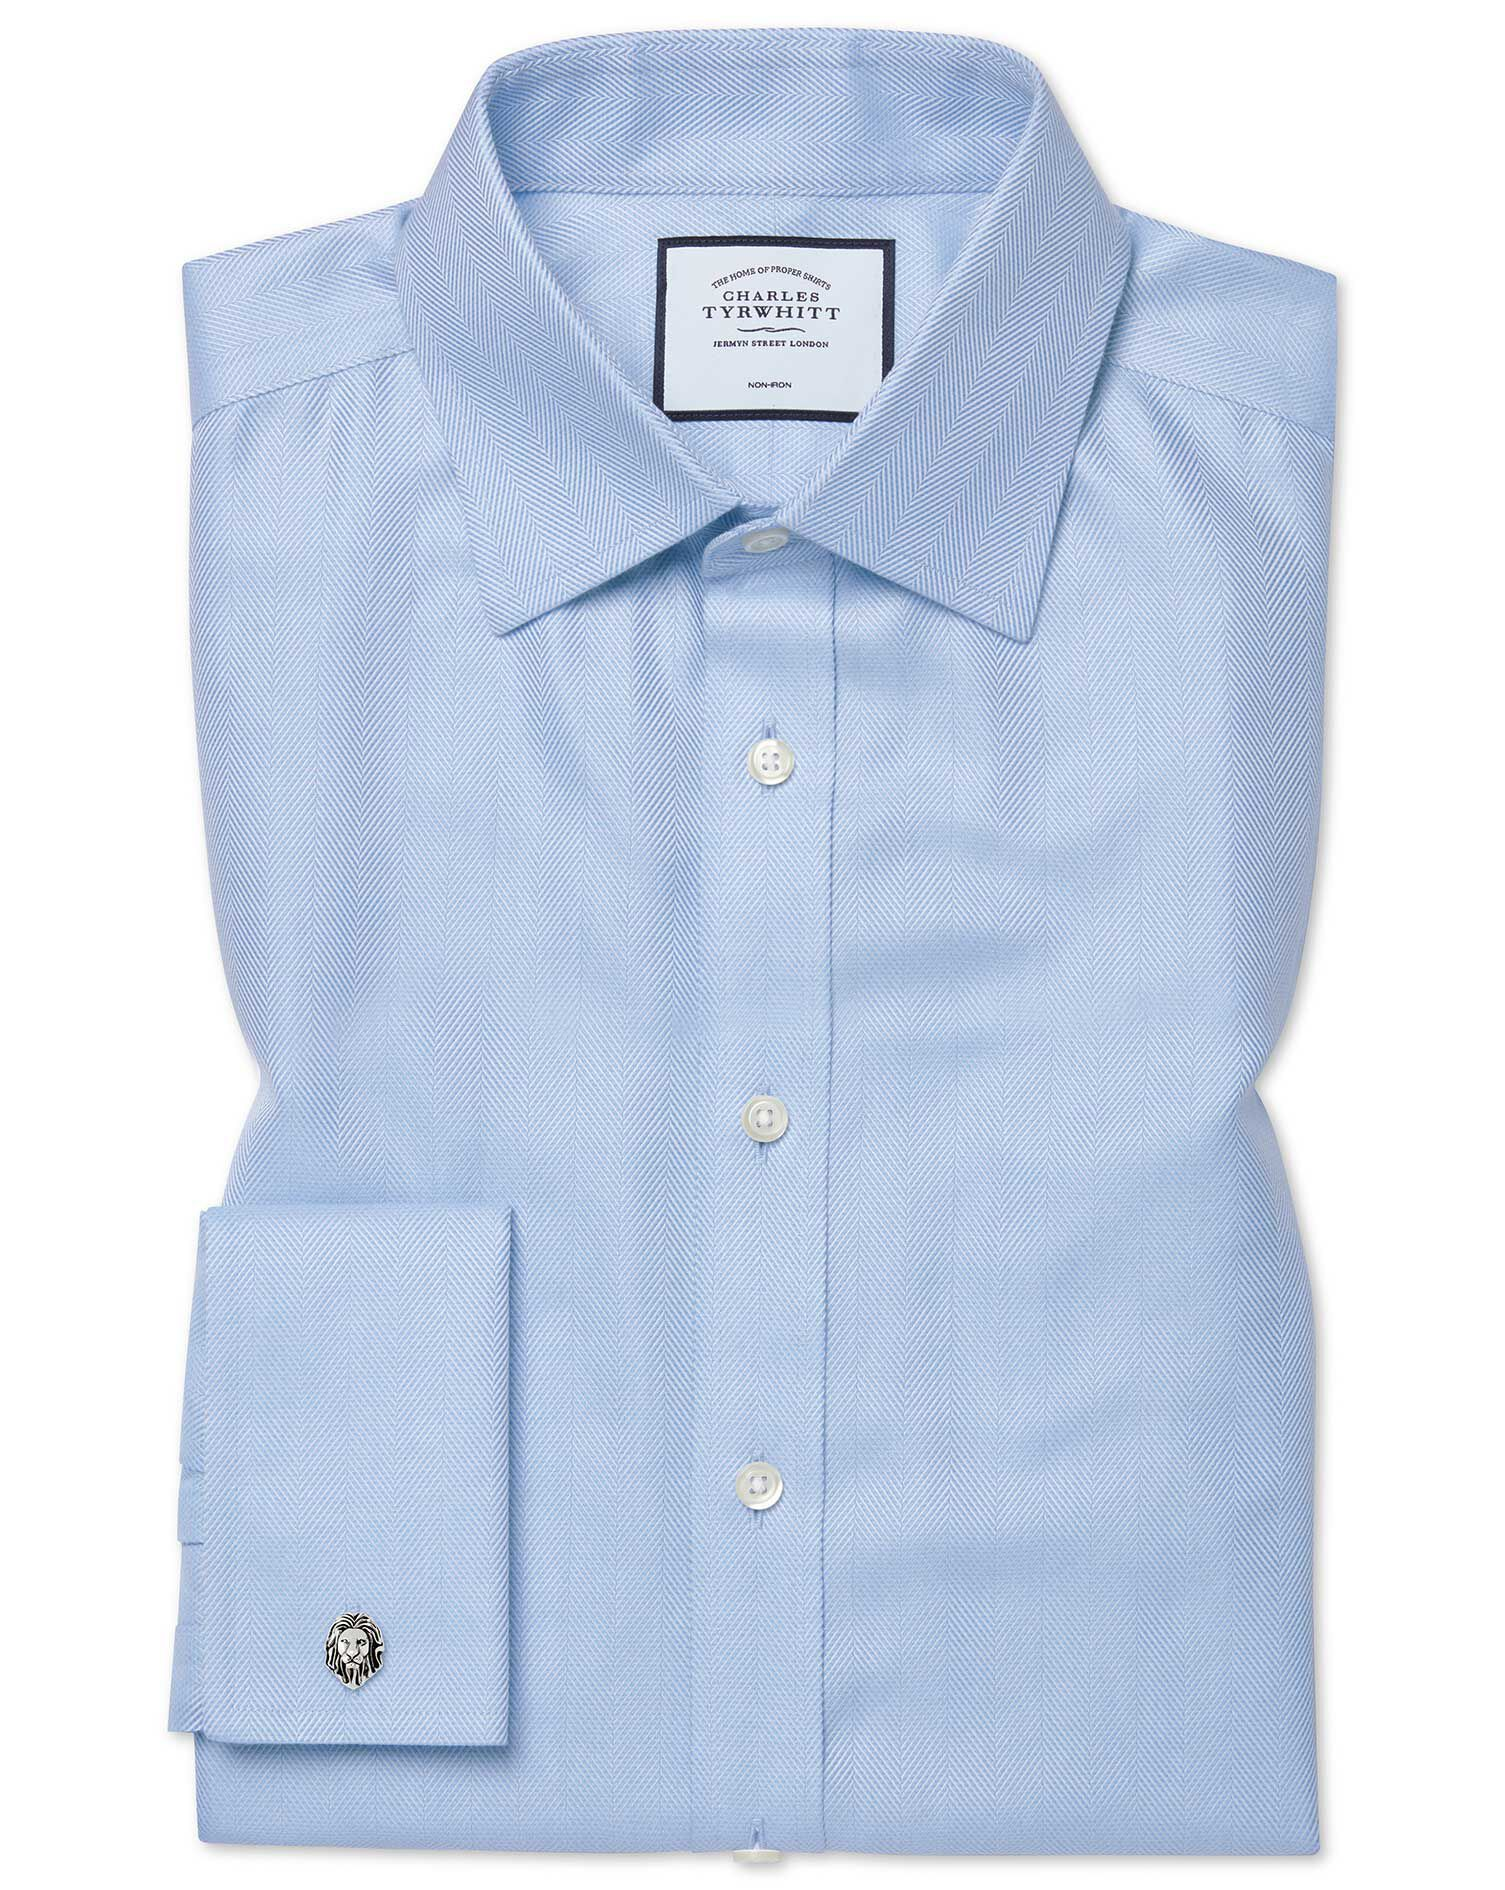 Classic Fit Non-Iron Herringbone Sky Blue Cotton Formal Shirt Single Cuff Size 17.5/35 by Charles Ty